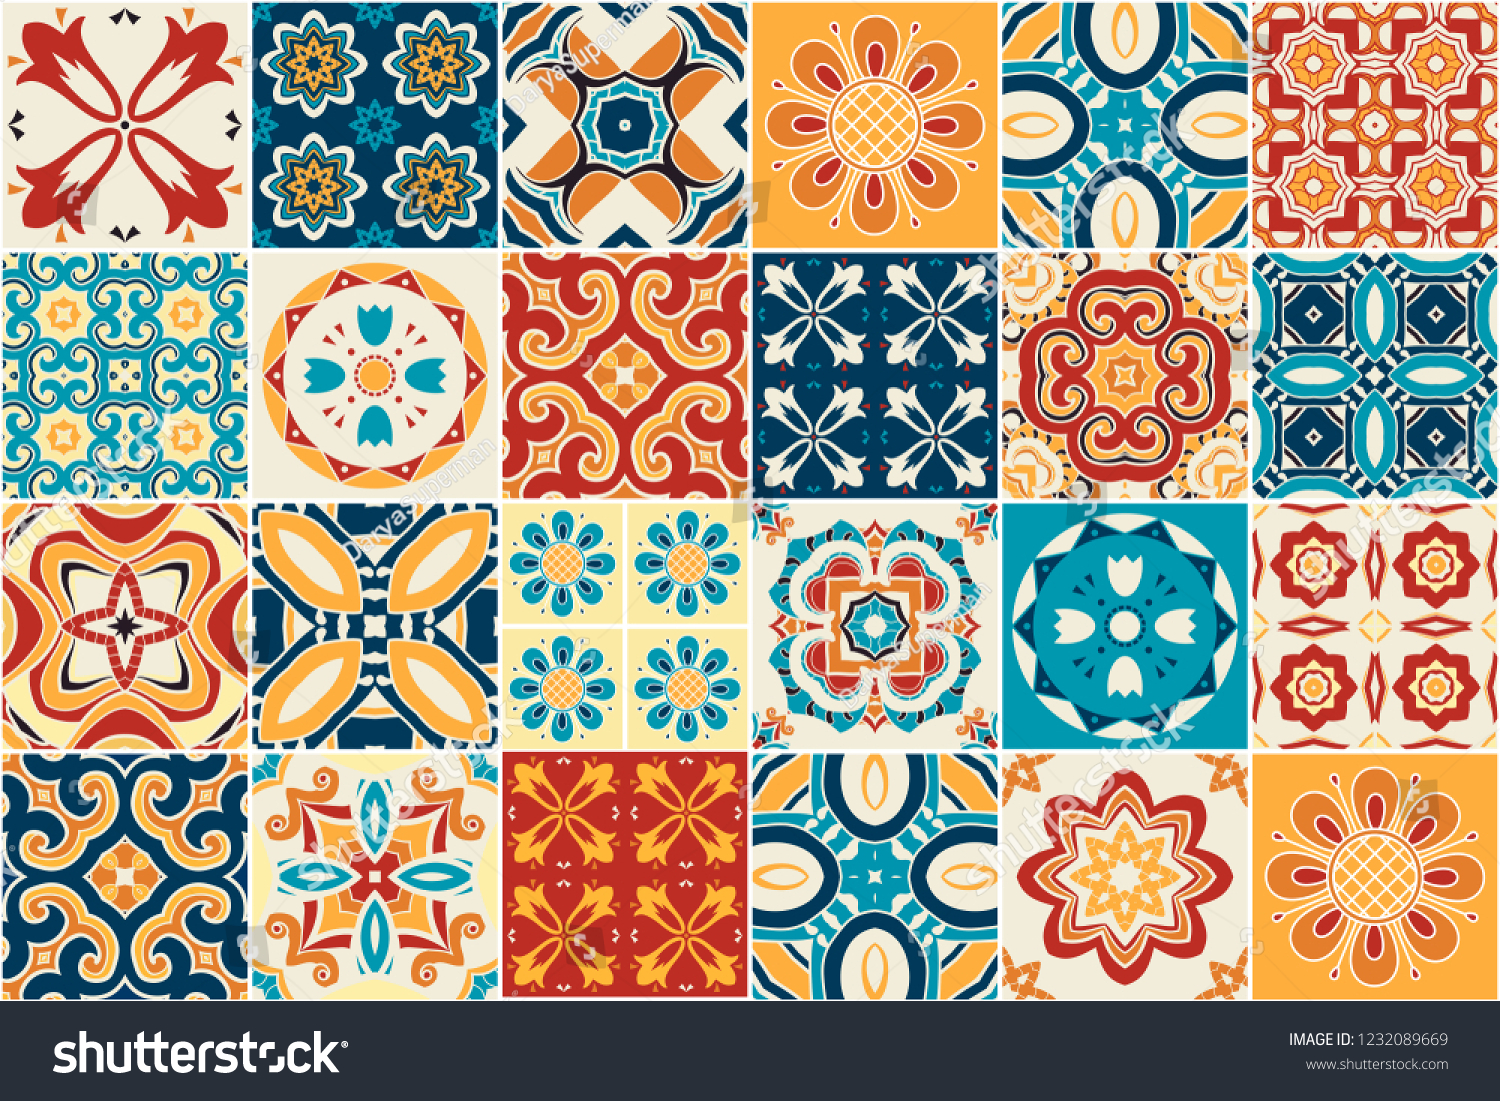 Azulejos De Colores Traditional Ornate Decorative Color Tiles Azulejos Stock Vector